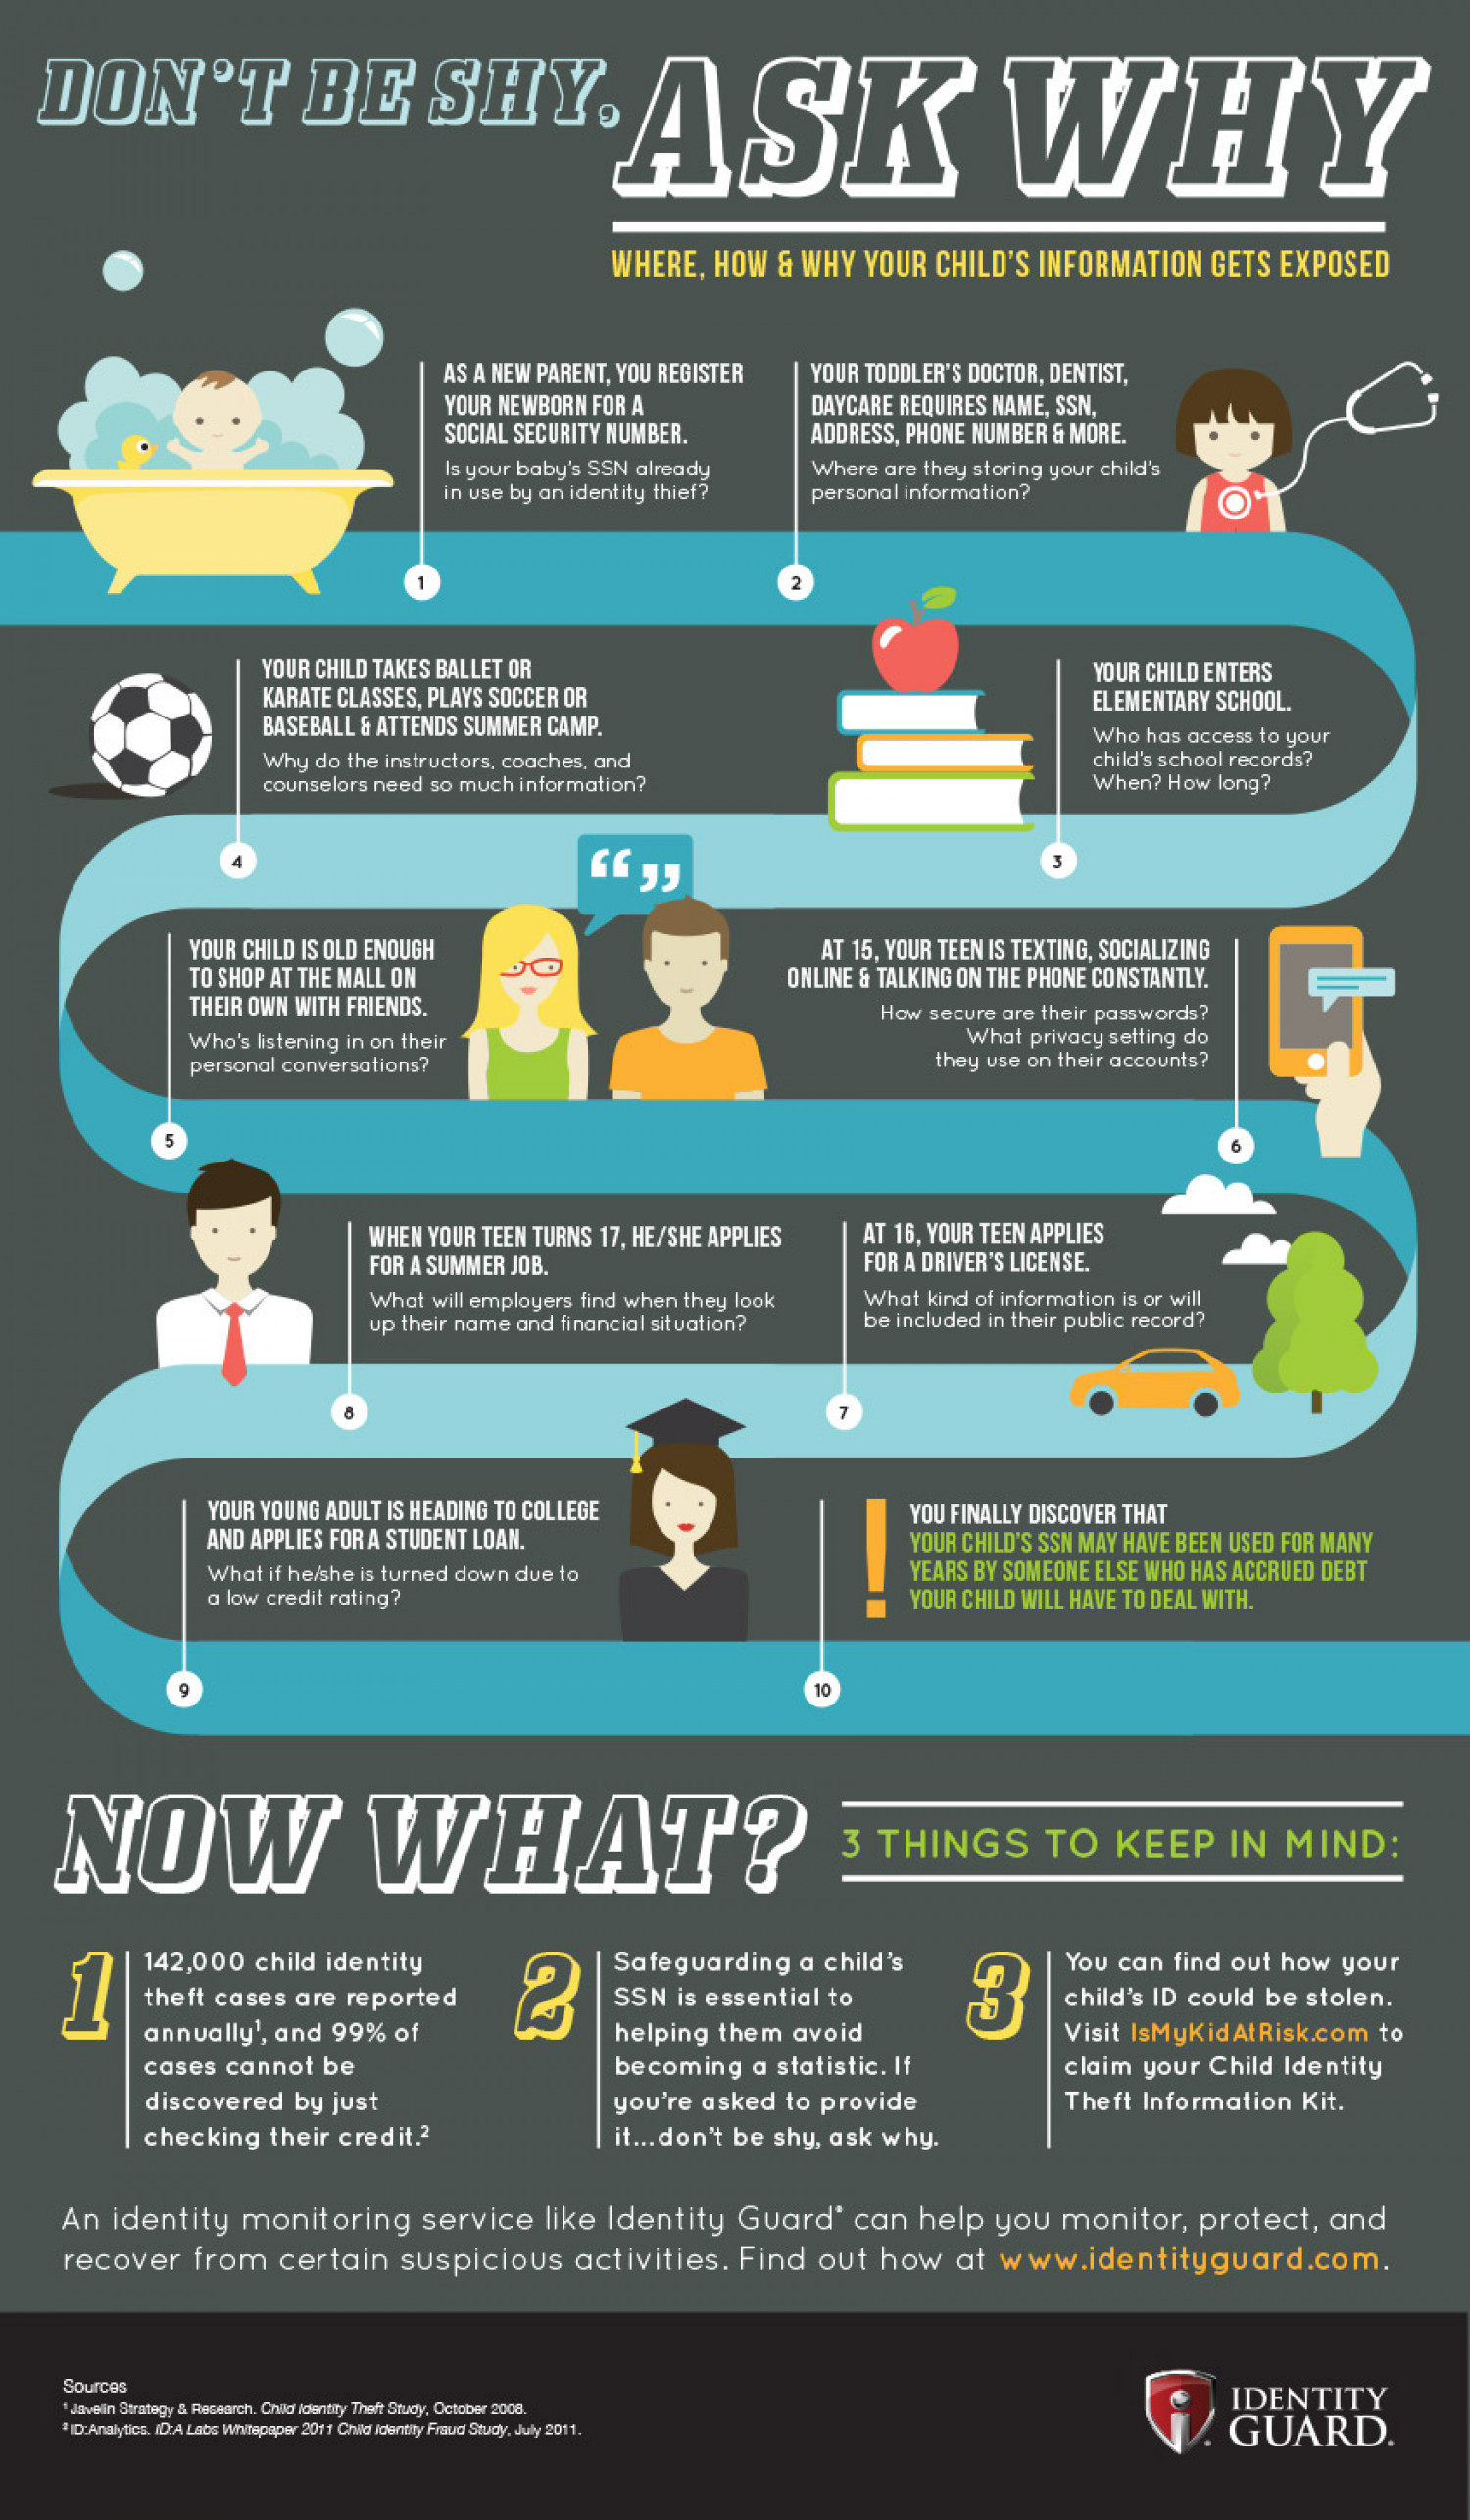 Where, How & Why a Child's Information Gets Exposed Infographic